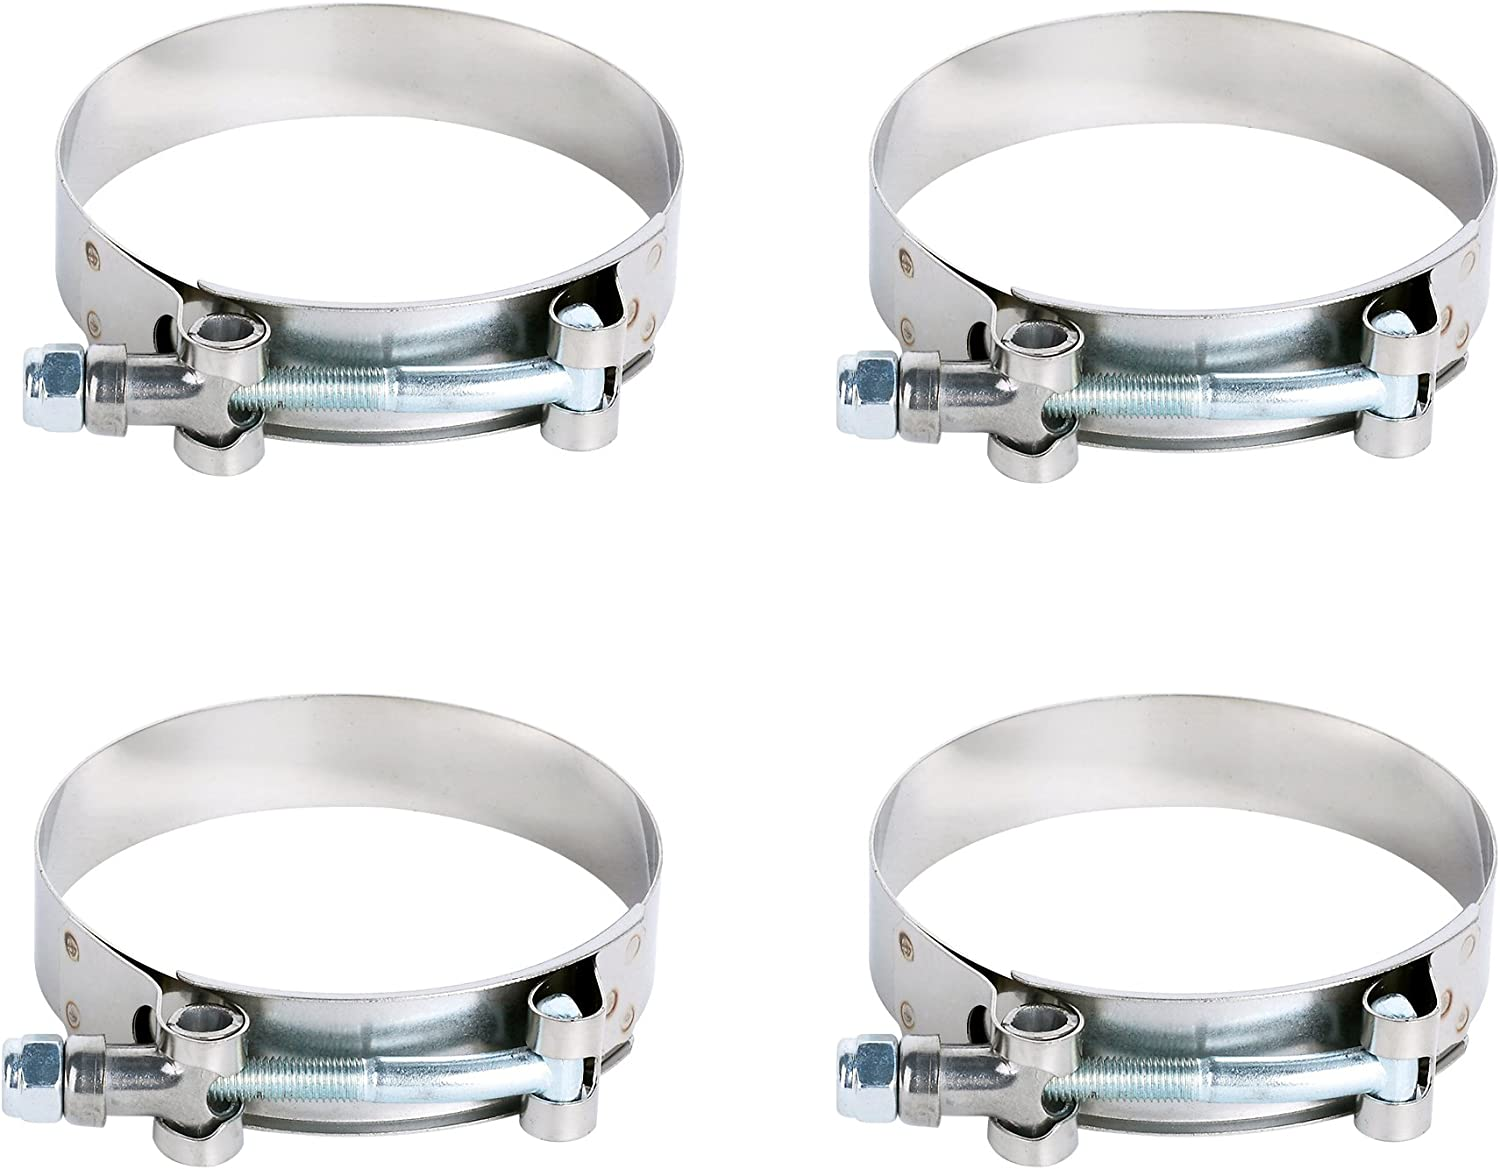 Pack of 4pcs Stainless Steel 70-80MM T-Bolt Clamp for Turbo Silicone Intercooler Intake Hose Clamp for 2.75 Hose